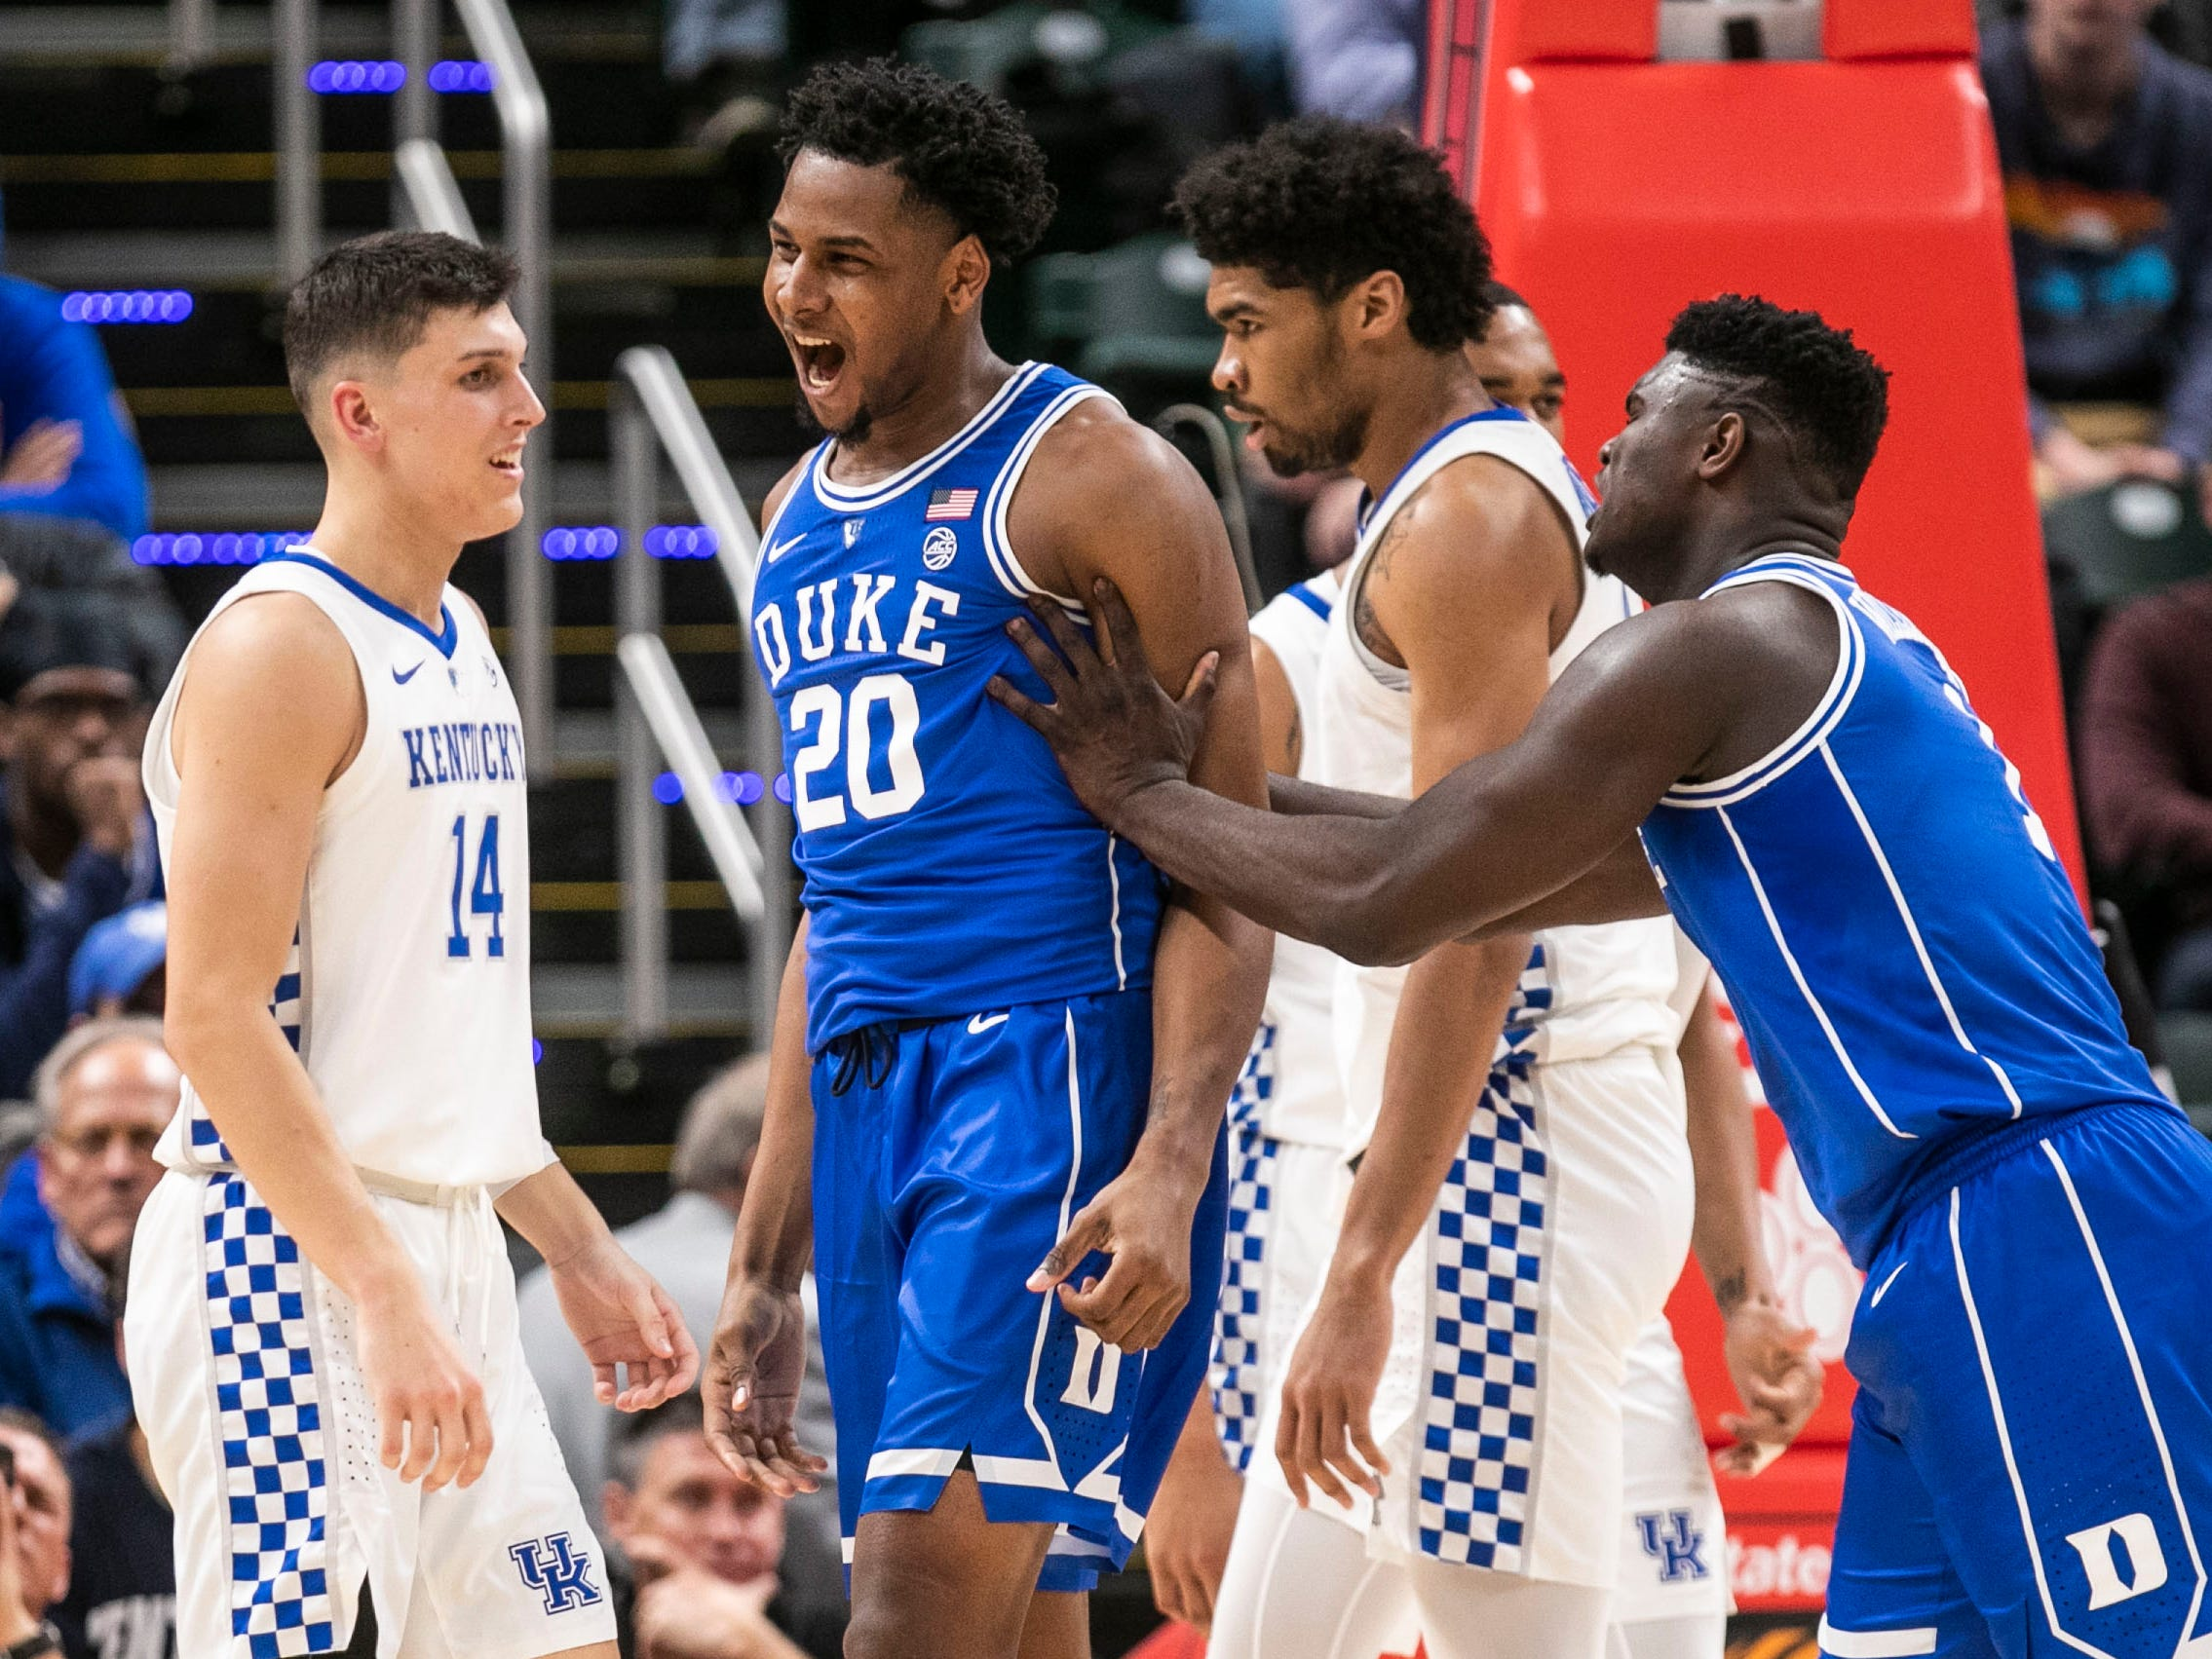 Duke's Marques Bolden celebrates after drawing the foul and two points against Kentucky's Tyler Herro in the first half in the Champions Classic Tuesday night. Nov. 6, 2018